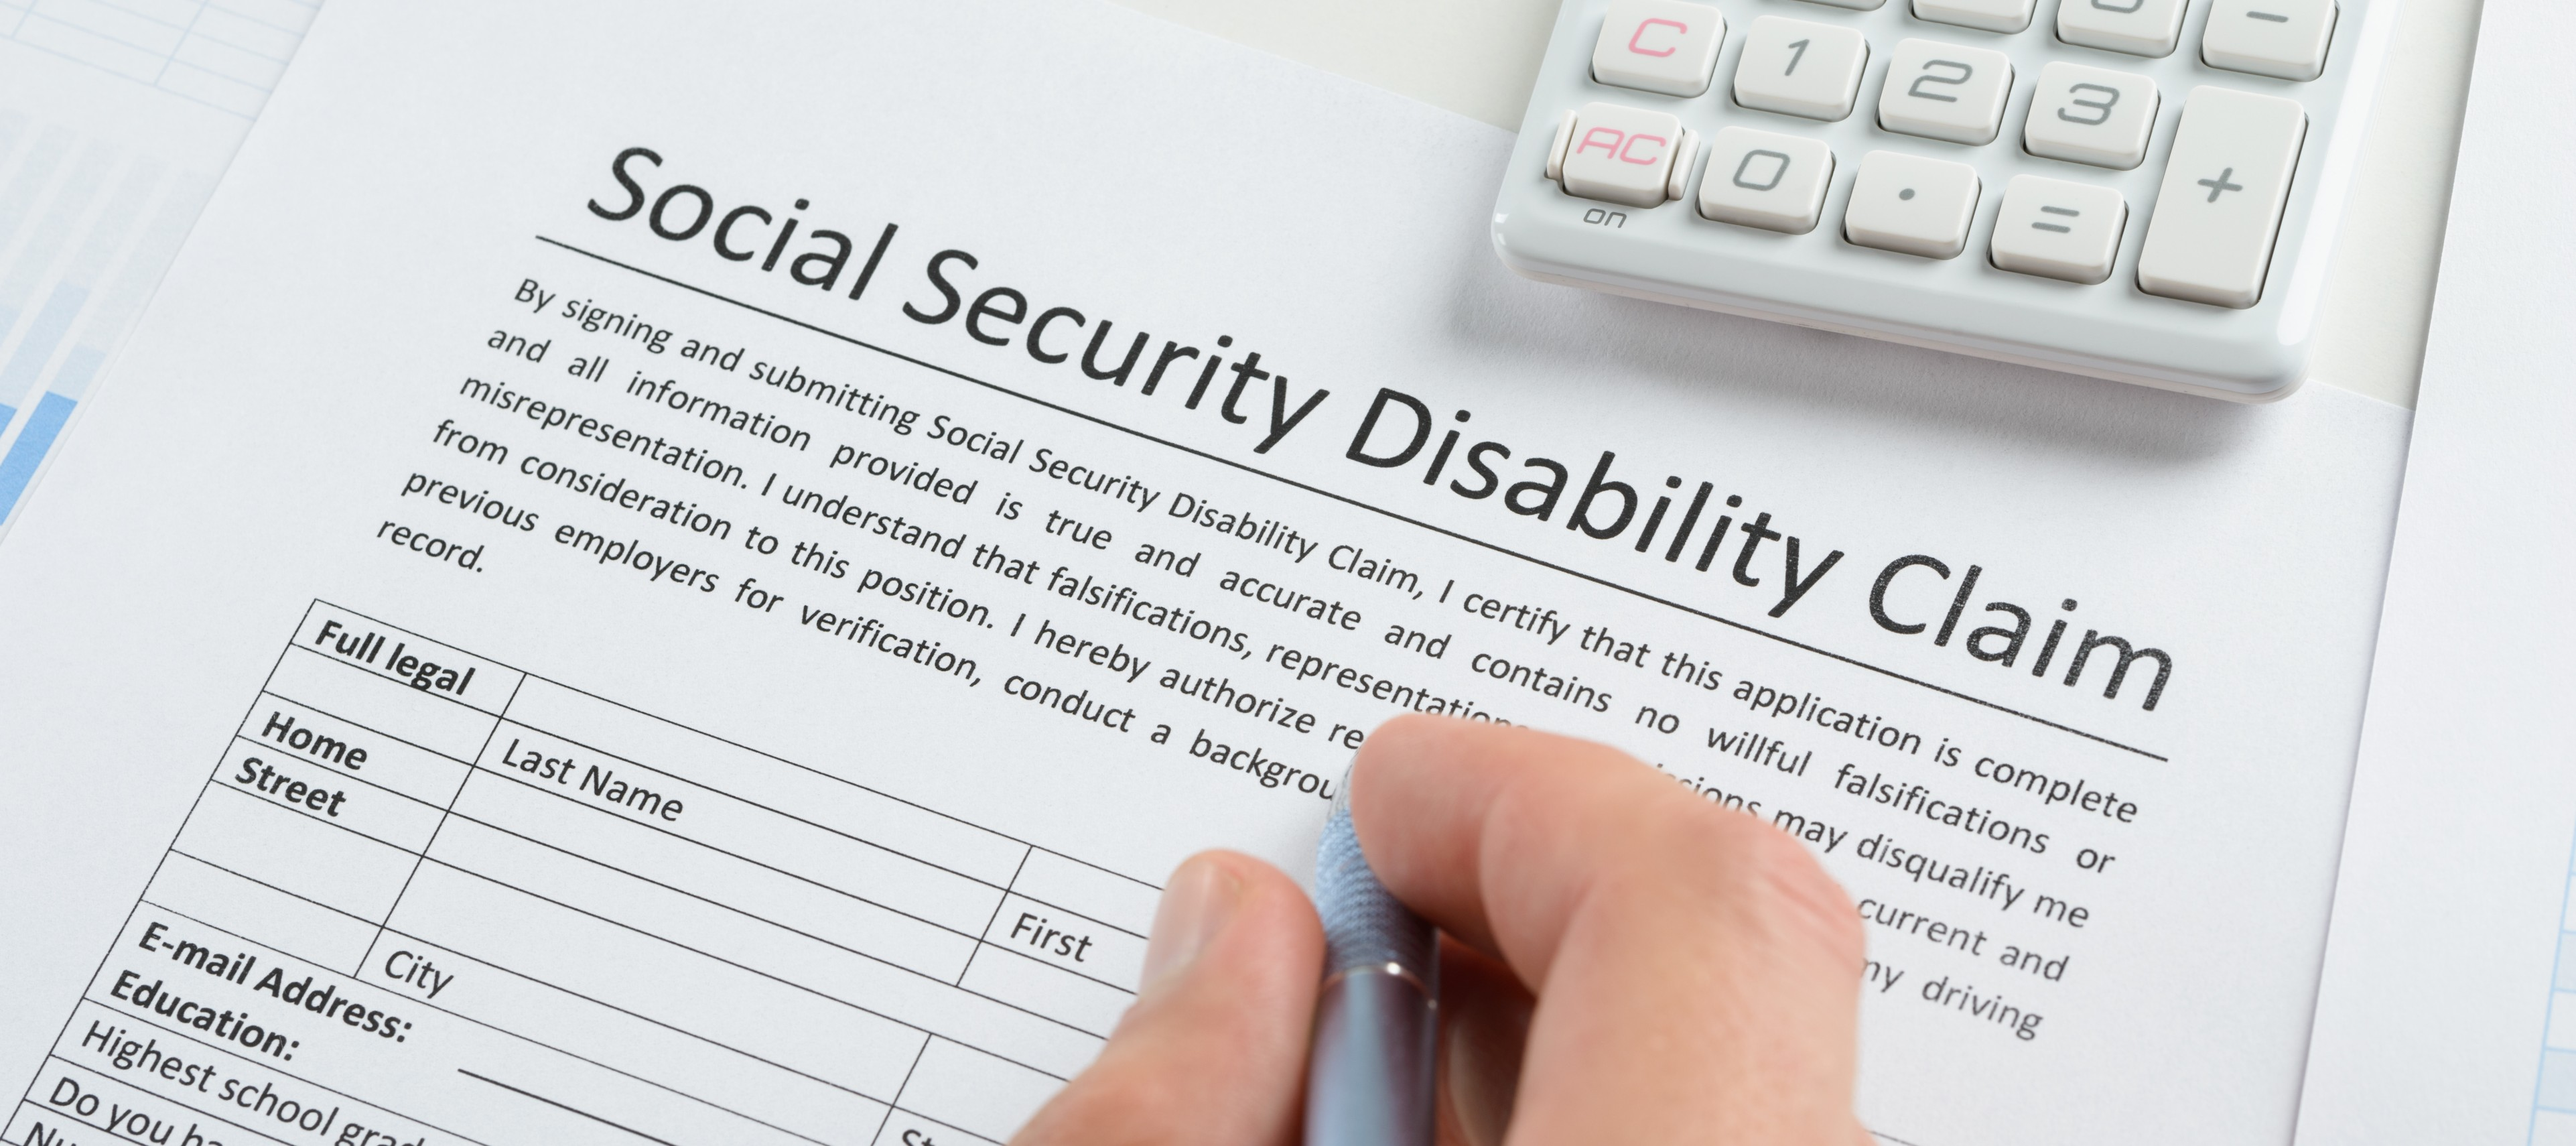 Social Security Disability Form | Do You Qualify For Social Security Disability Benefits In Maryland